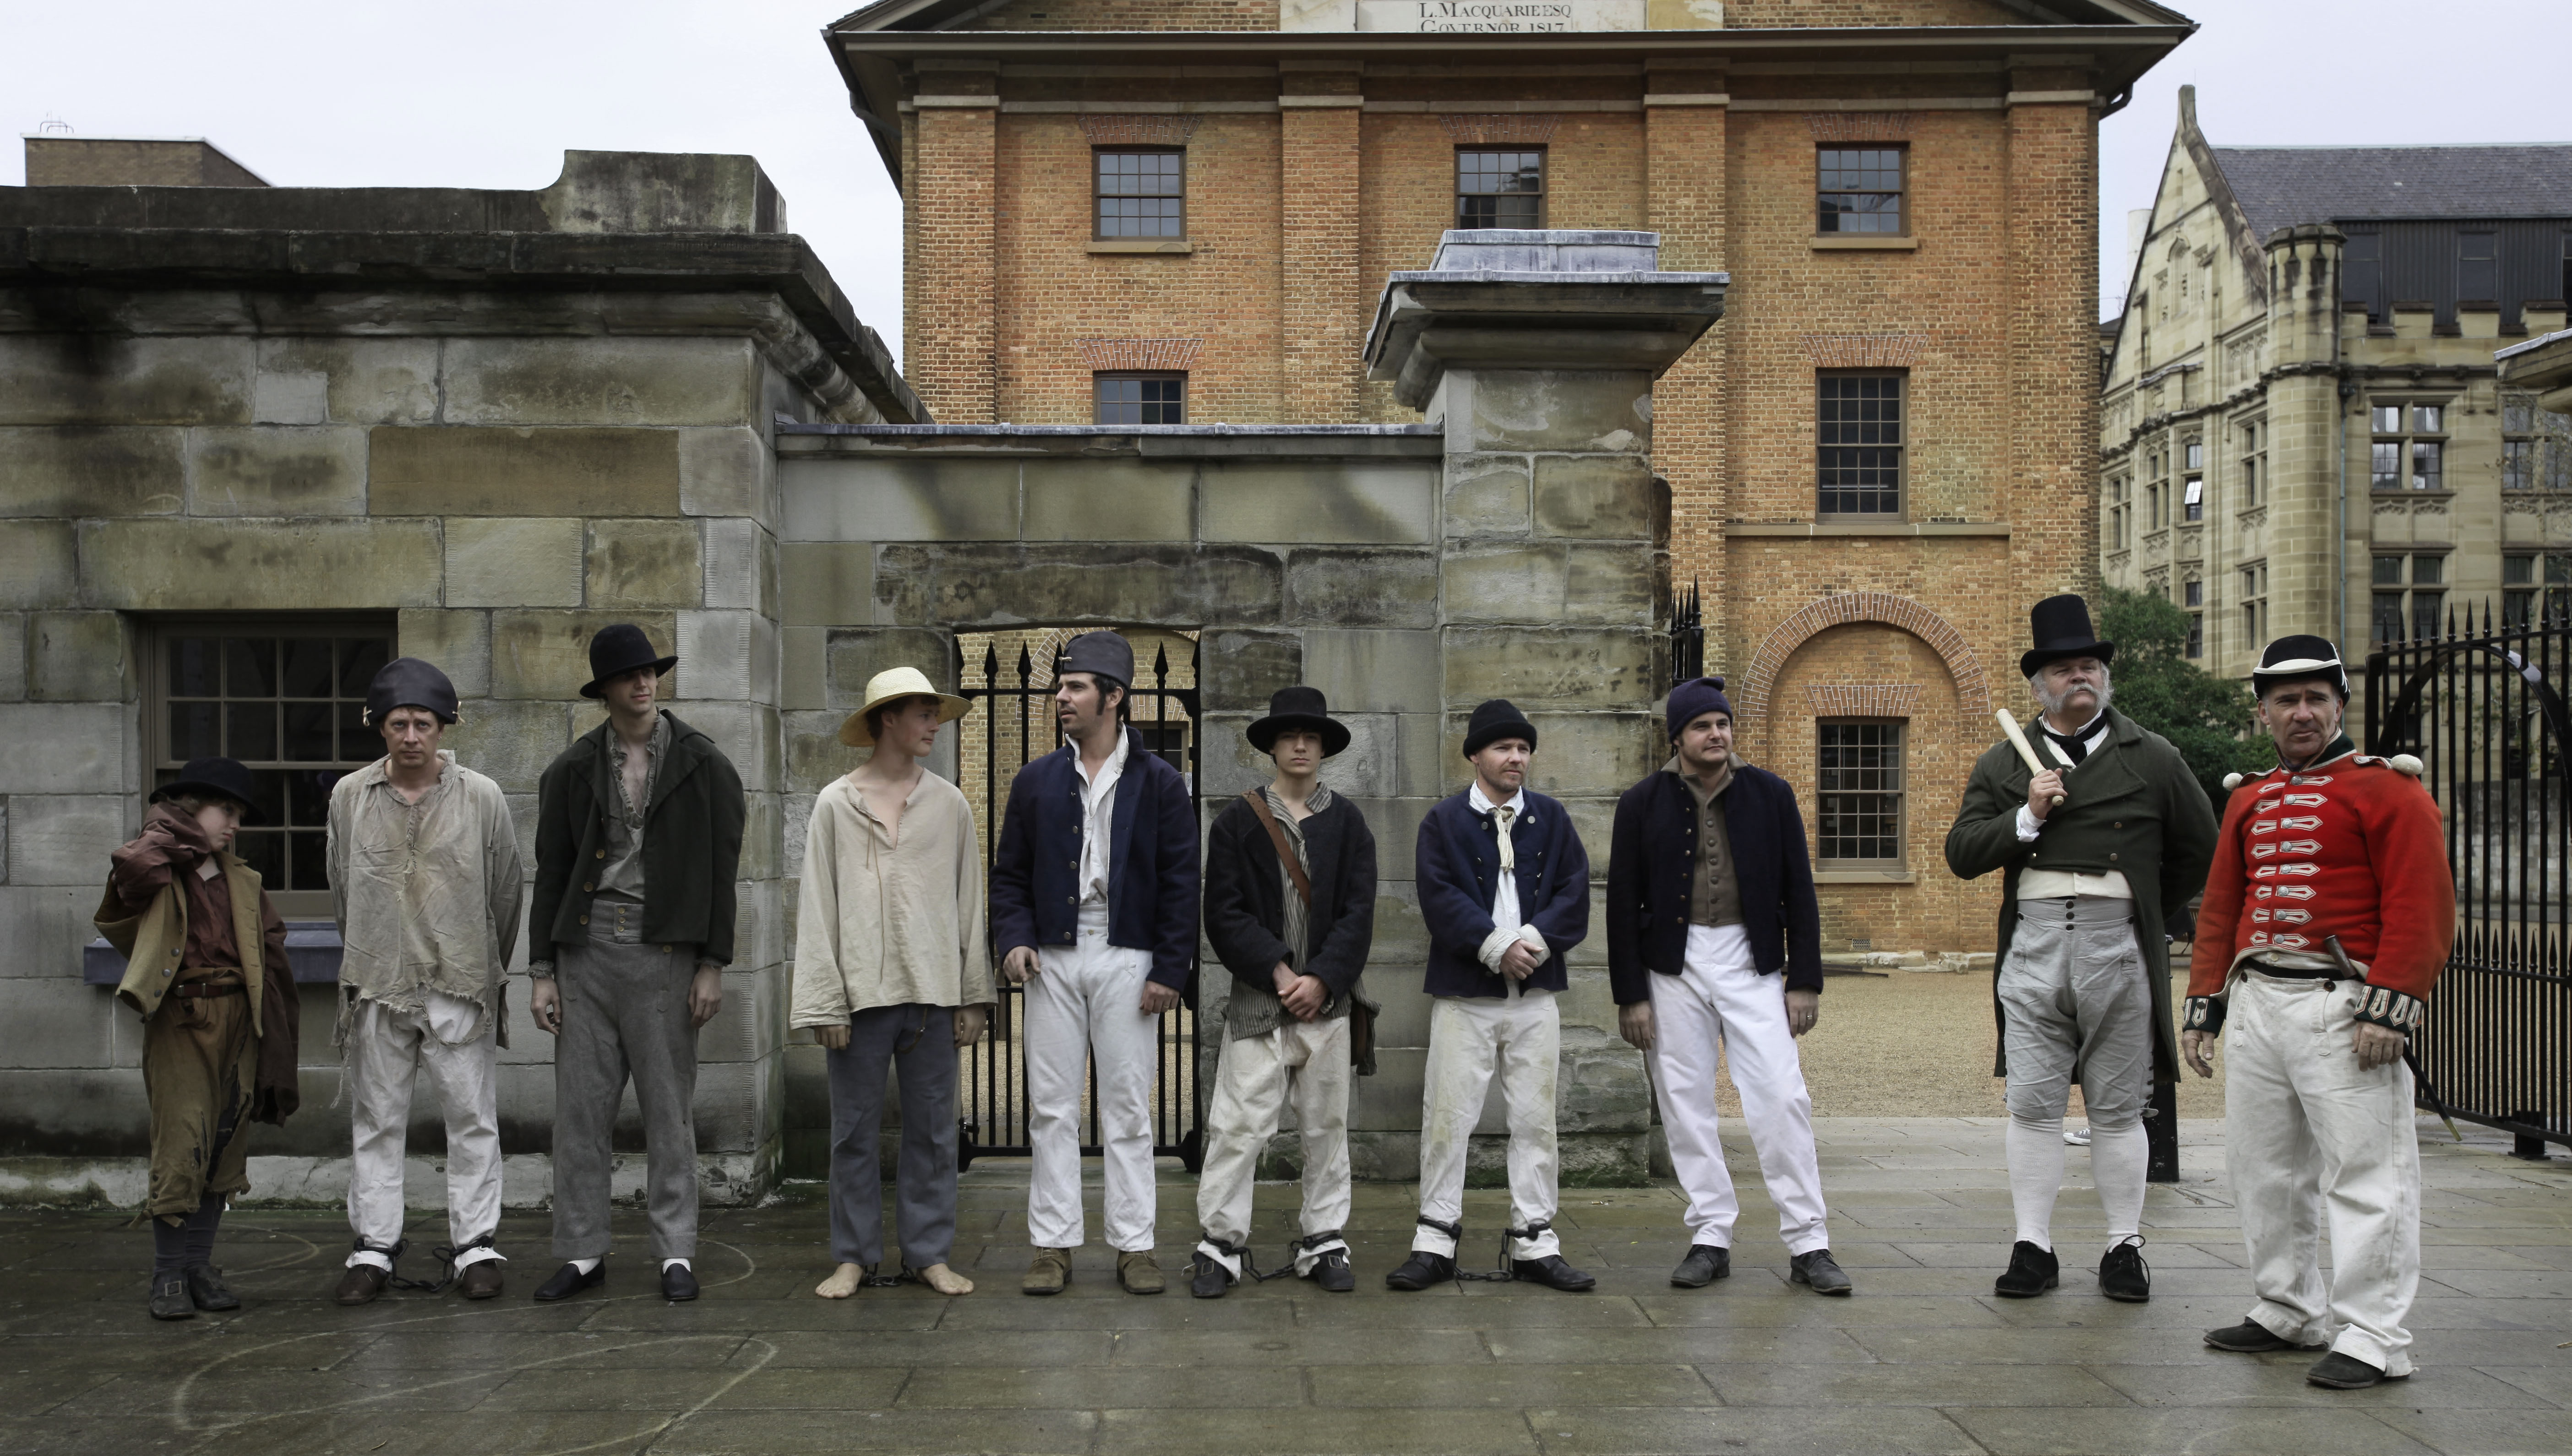 A group of convicts gathers outside the gates to the Hyde Park Barracks. An overseer and a redcoat watch over.